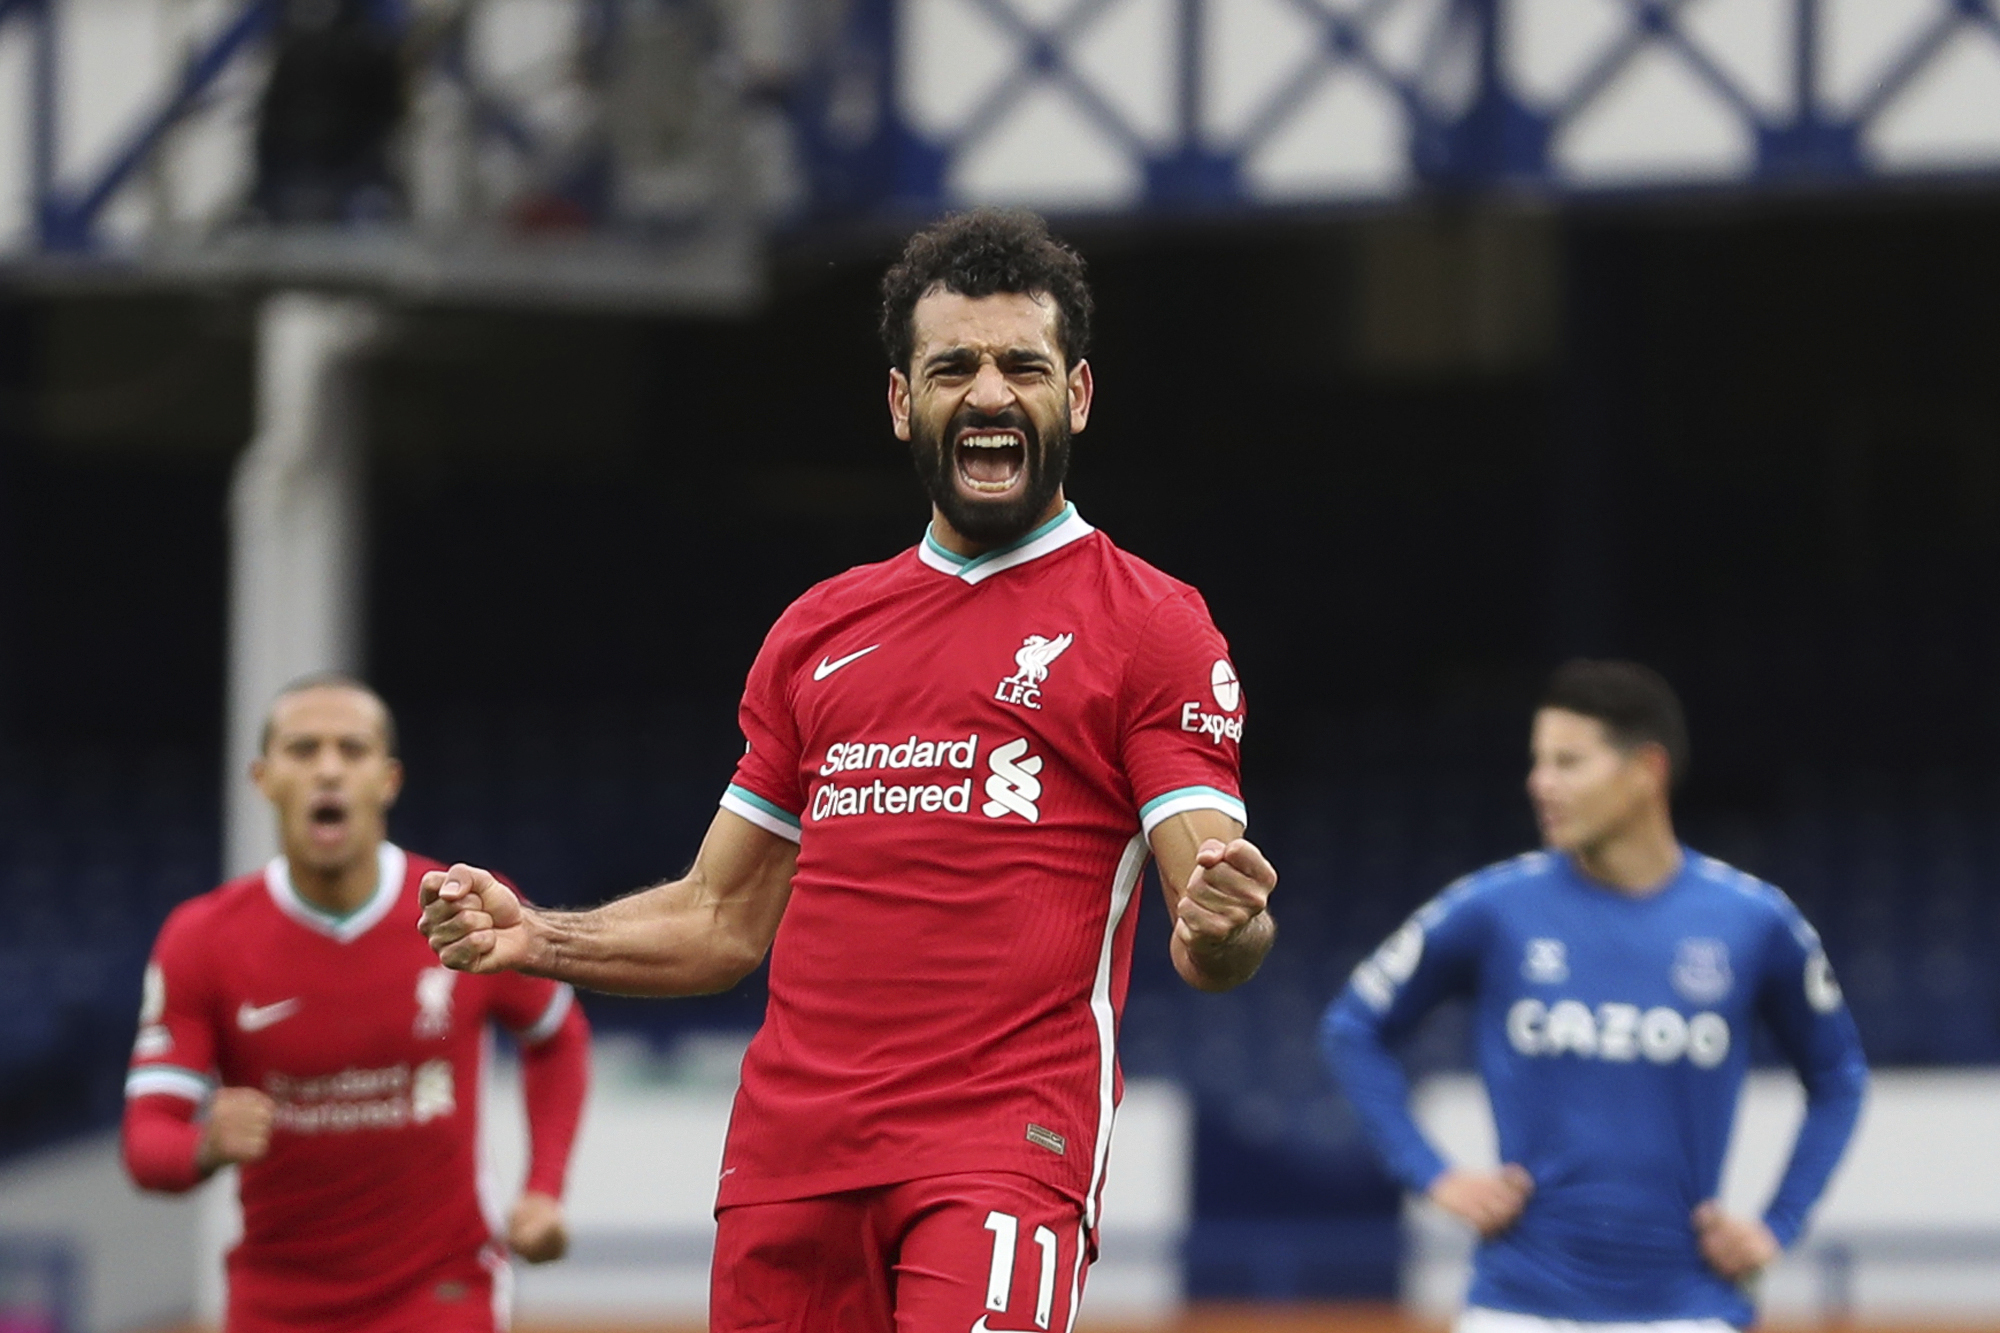 Liverpool Vs Fc Midtjylland Live Stream Start Time Tv Channel How To Watch Champions League 2020 Tue Oct 27 Masslive Com